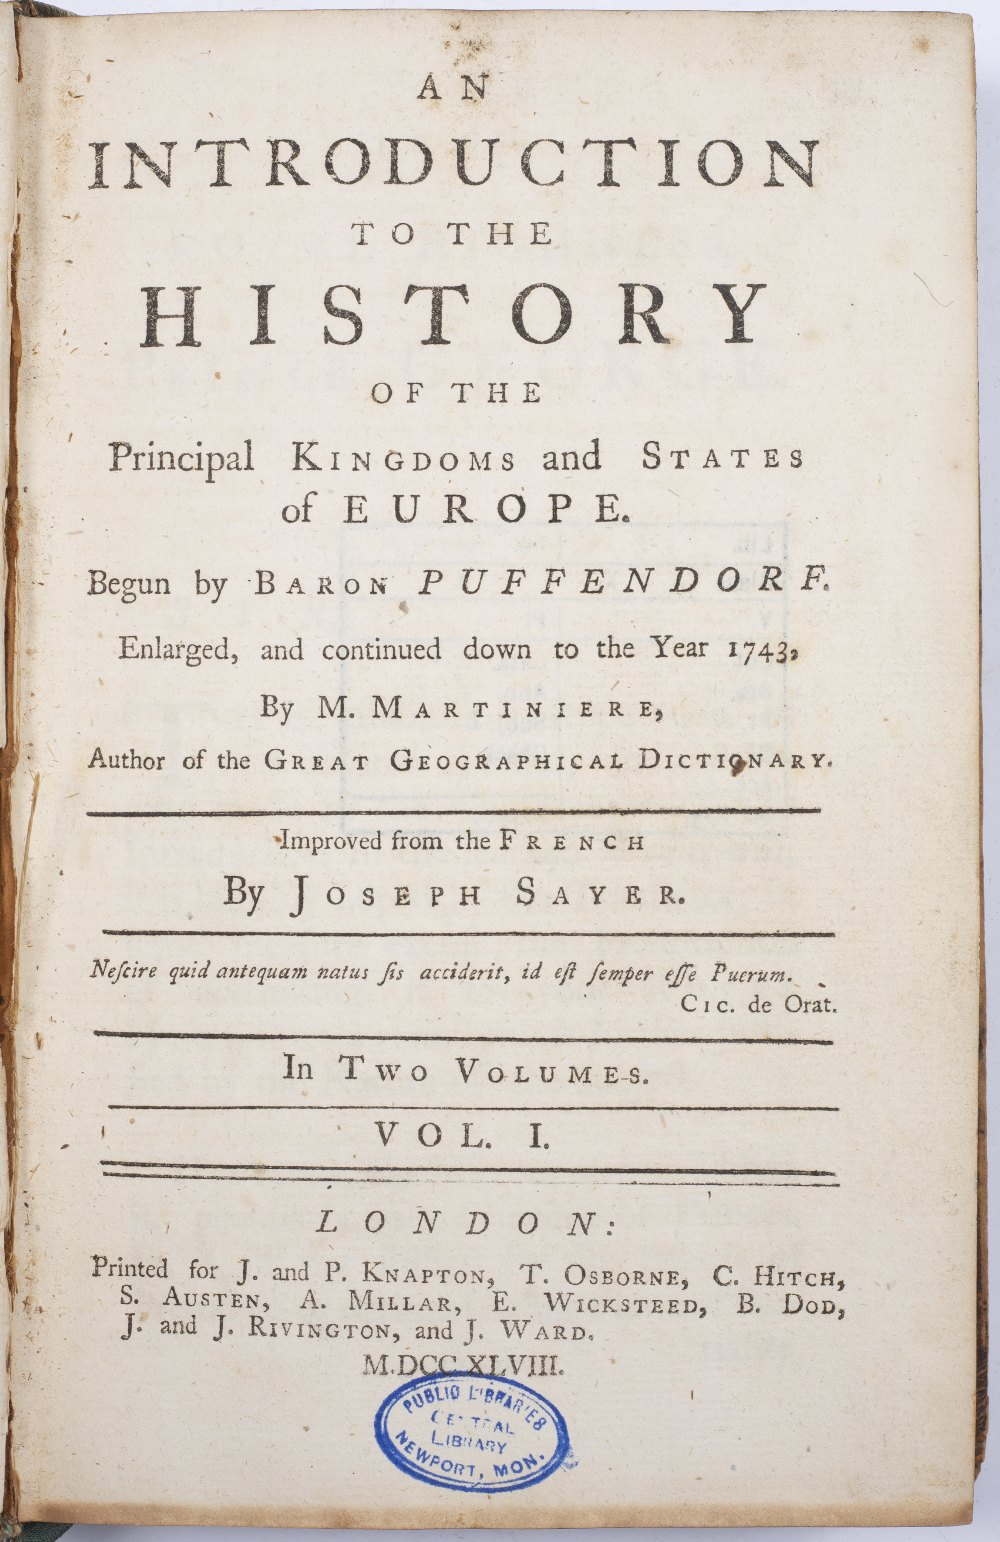 SAYER, Joseph, An Introduction to the History of the Principal Kingdoms and States of Europe, - Image 2 of 4